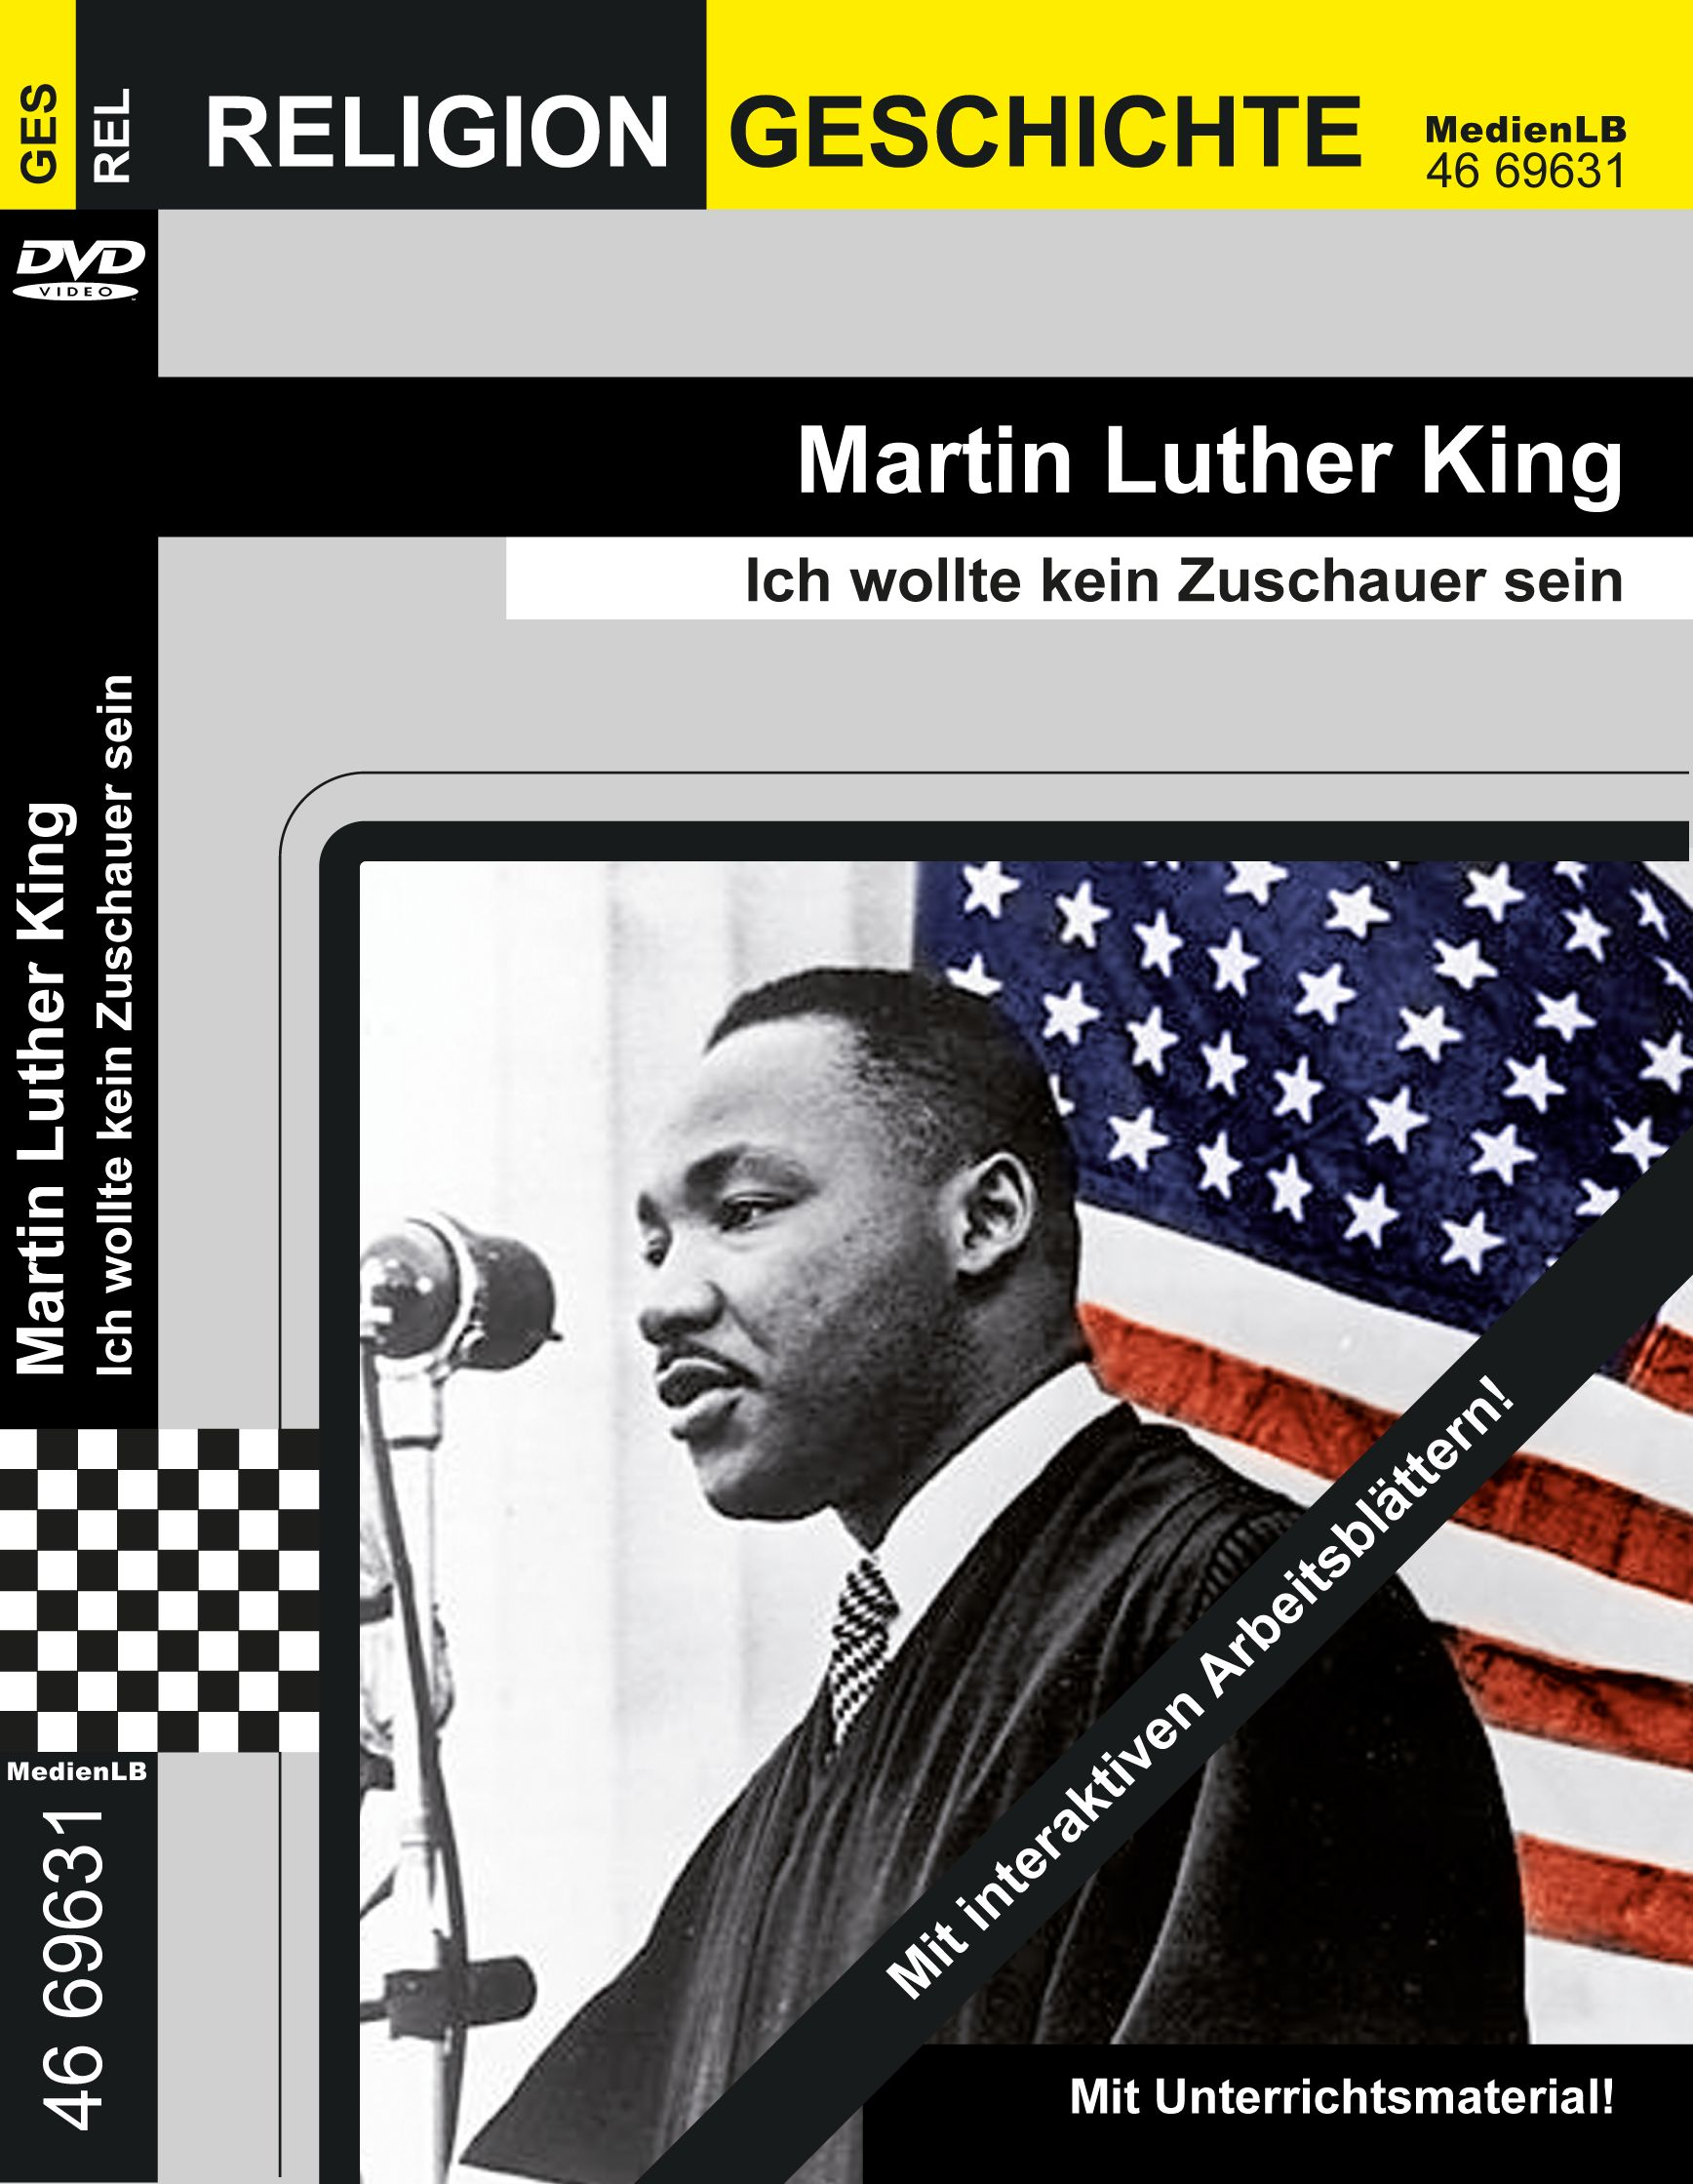 Martin Luther King - DVD - MedienLB